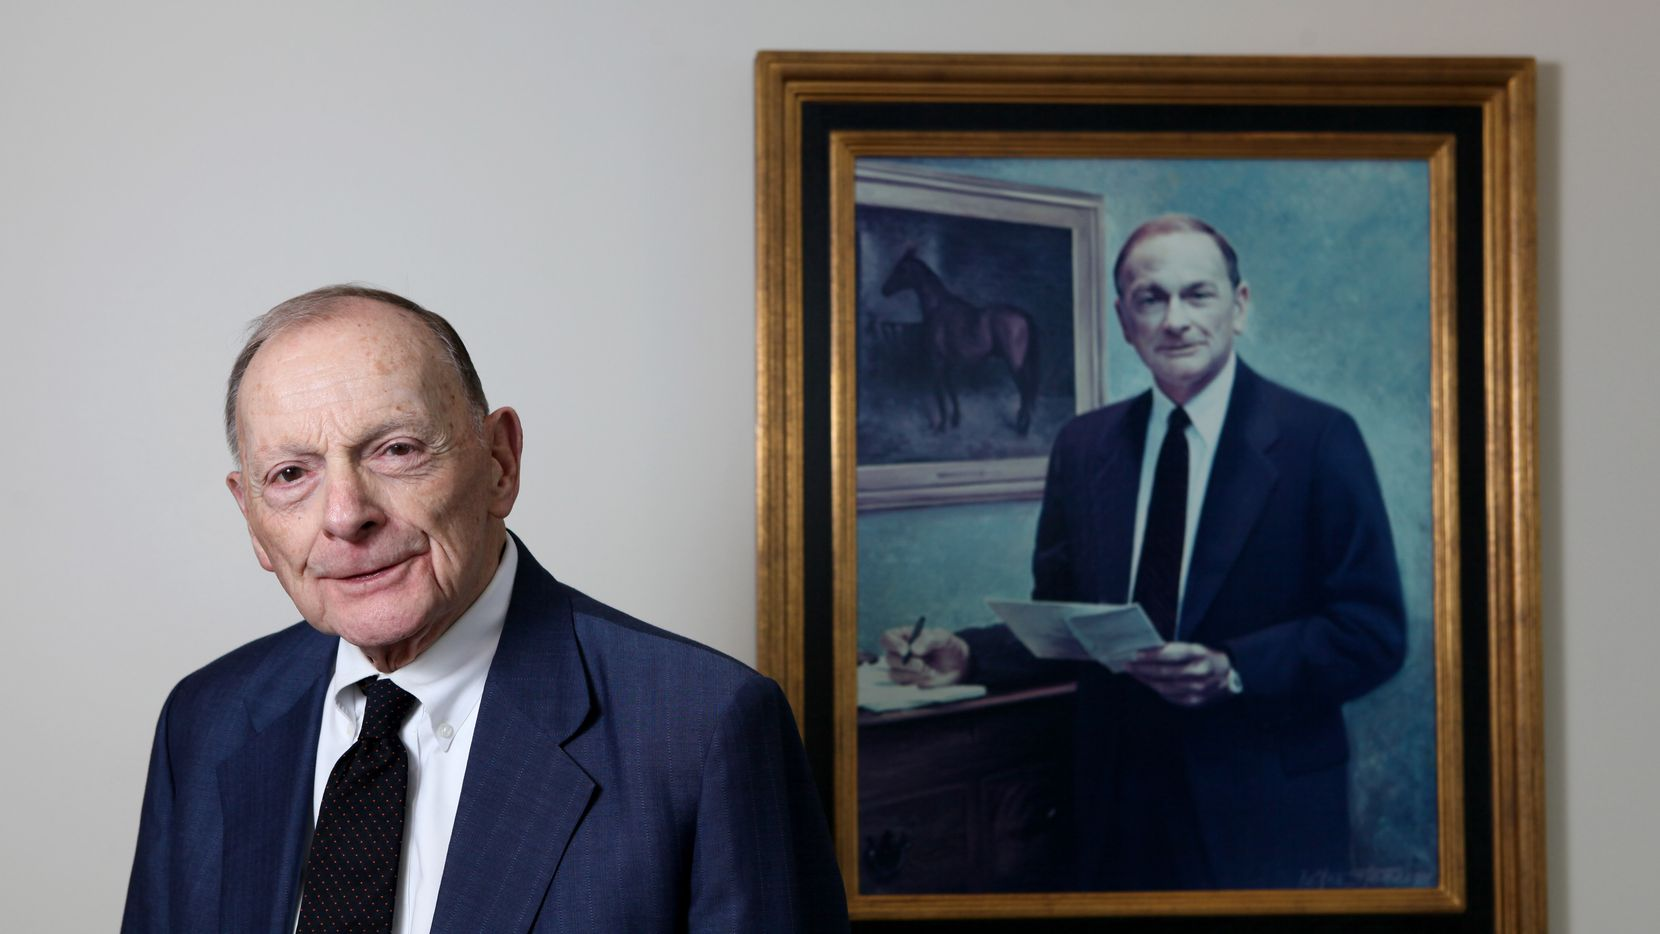 Jim Coleman, of Carrington Coleman Sloman & Blumenthal was photographed in his office on May 17, 2013 in downtown Dallas. The portrait of Coleman is a replica of the original that hangs at Virginia University.